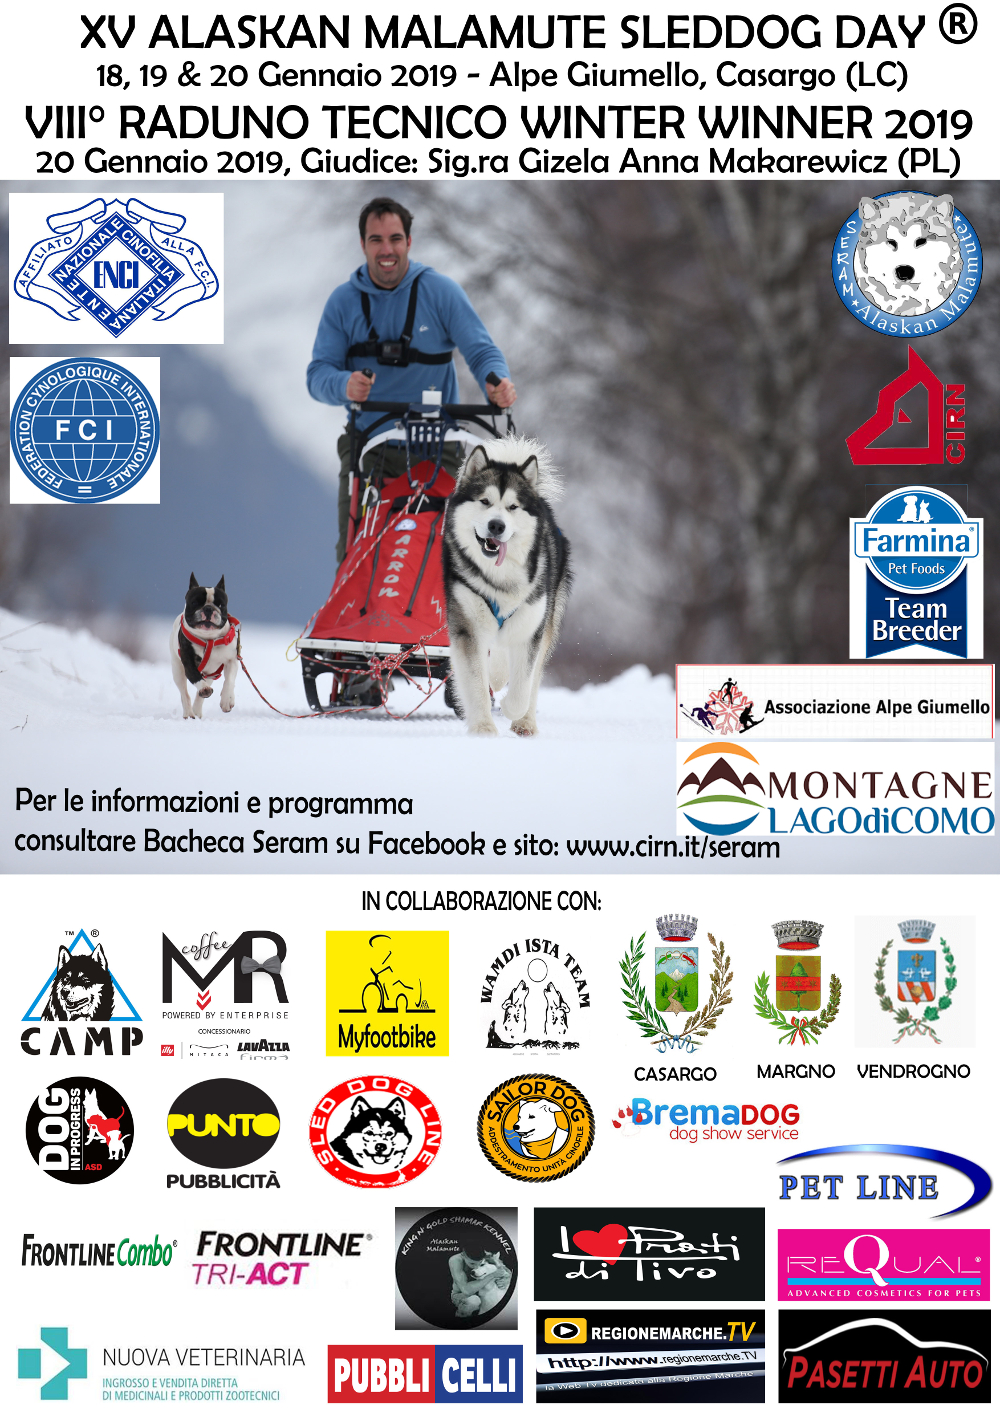 XV.Malamute Sletdog Day_Lake Como 2019